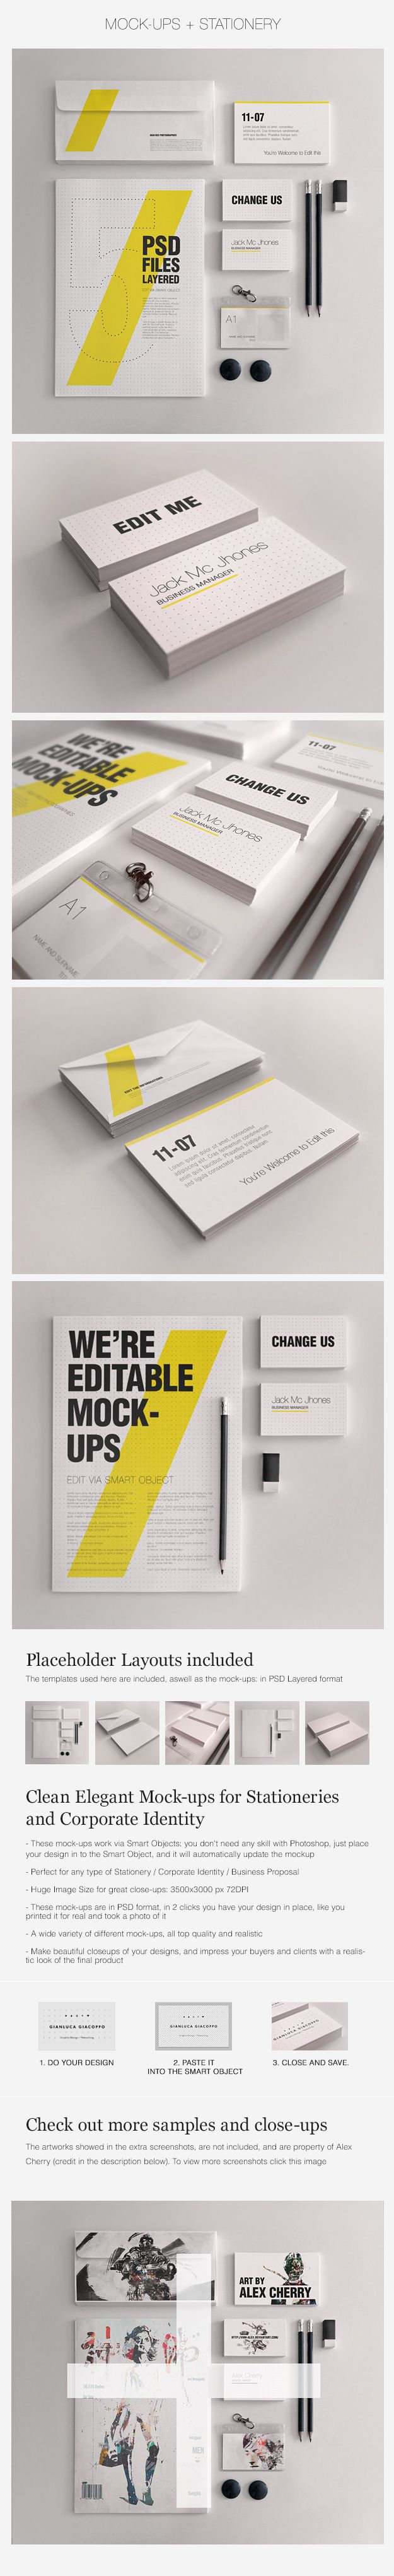 Realistic Stationery - Mock-ups